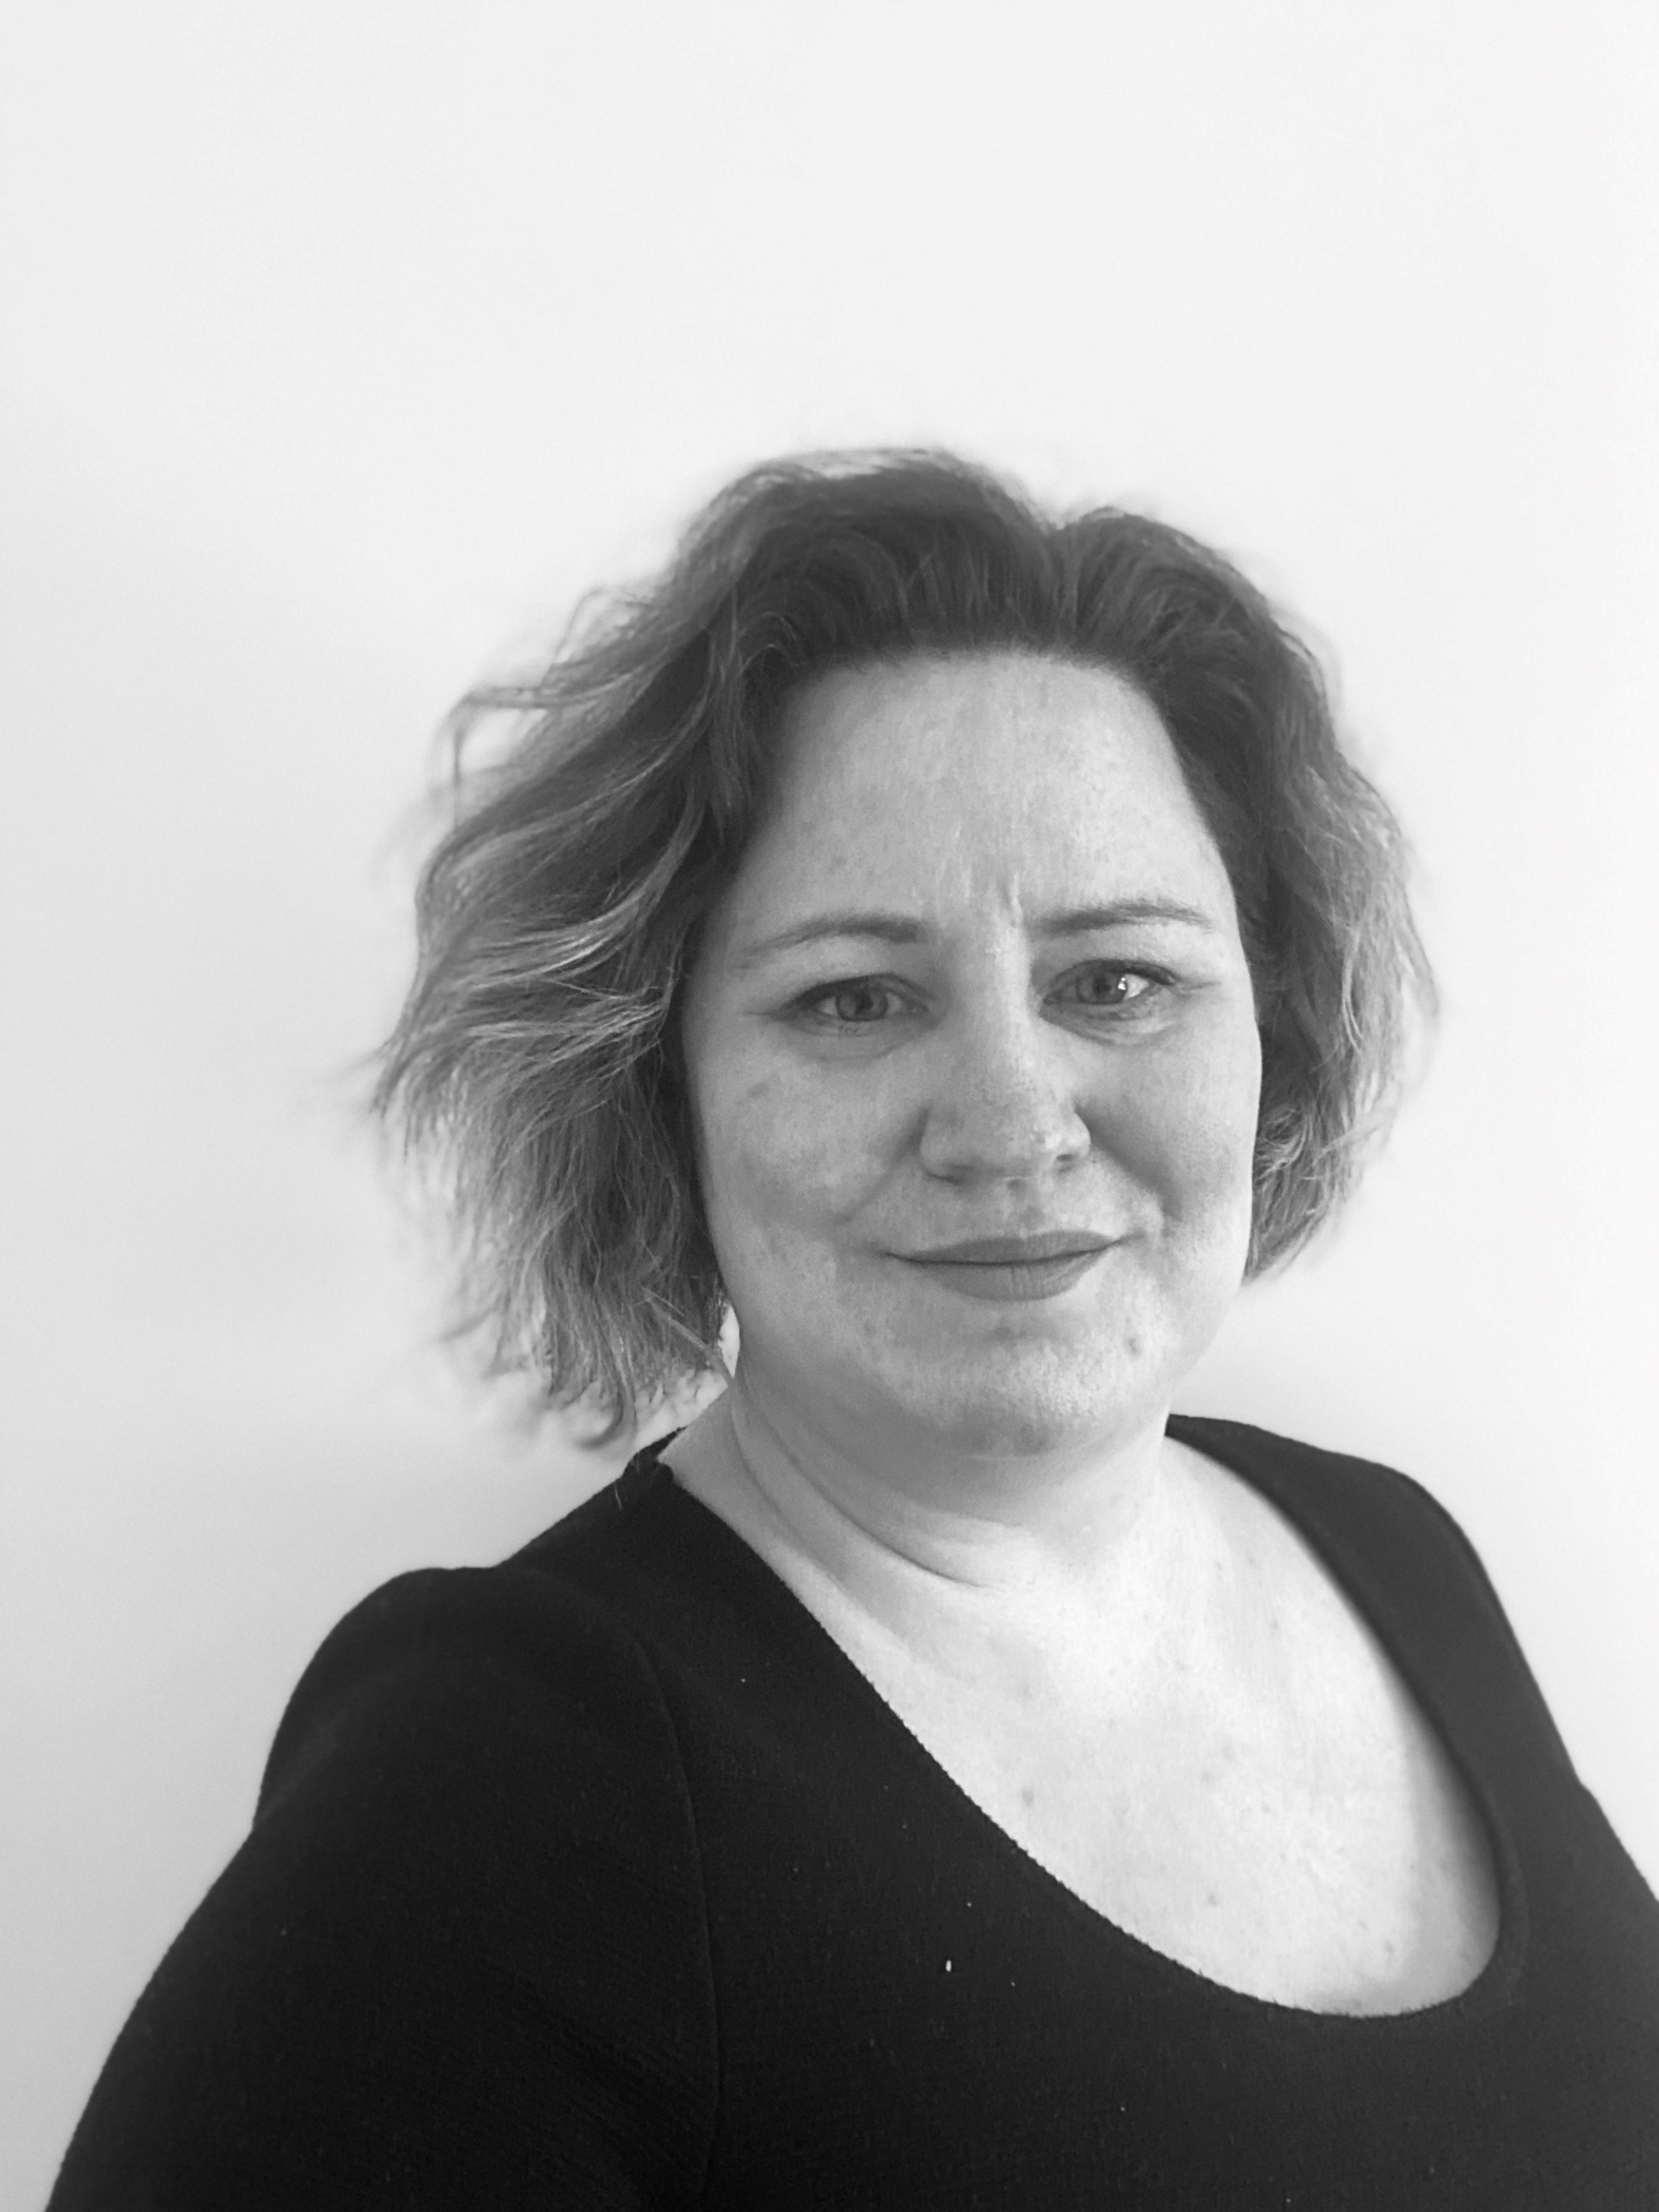 Liz Miles, Associate Solicitor and Head of Public Law Family